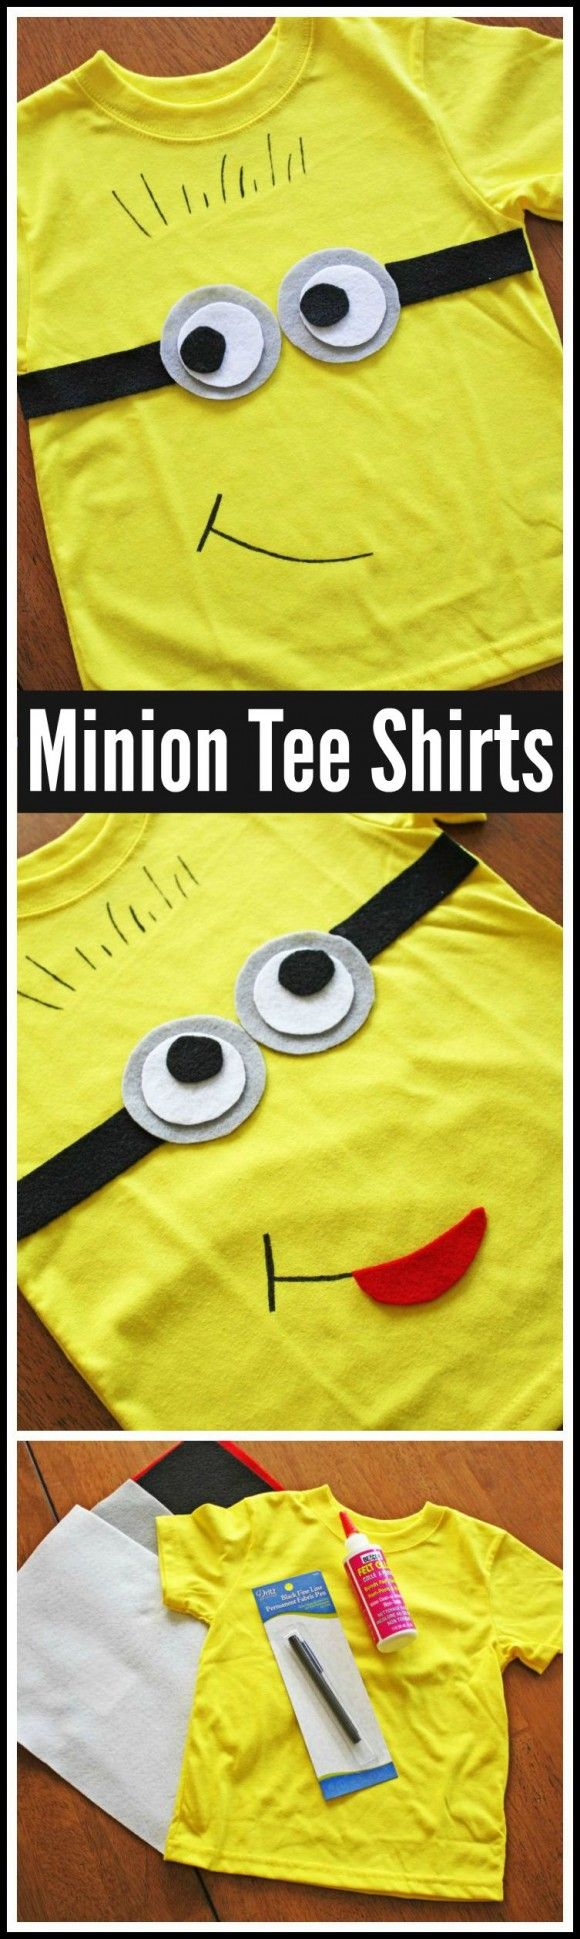 Minions Tee Shirt DIY. Make these as party favors or a party craft at your Minions birthday party or Despicable Me birthday party! |CatchMyParty.com